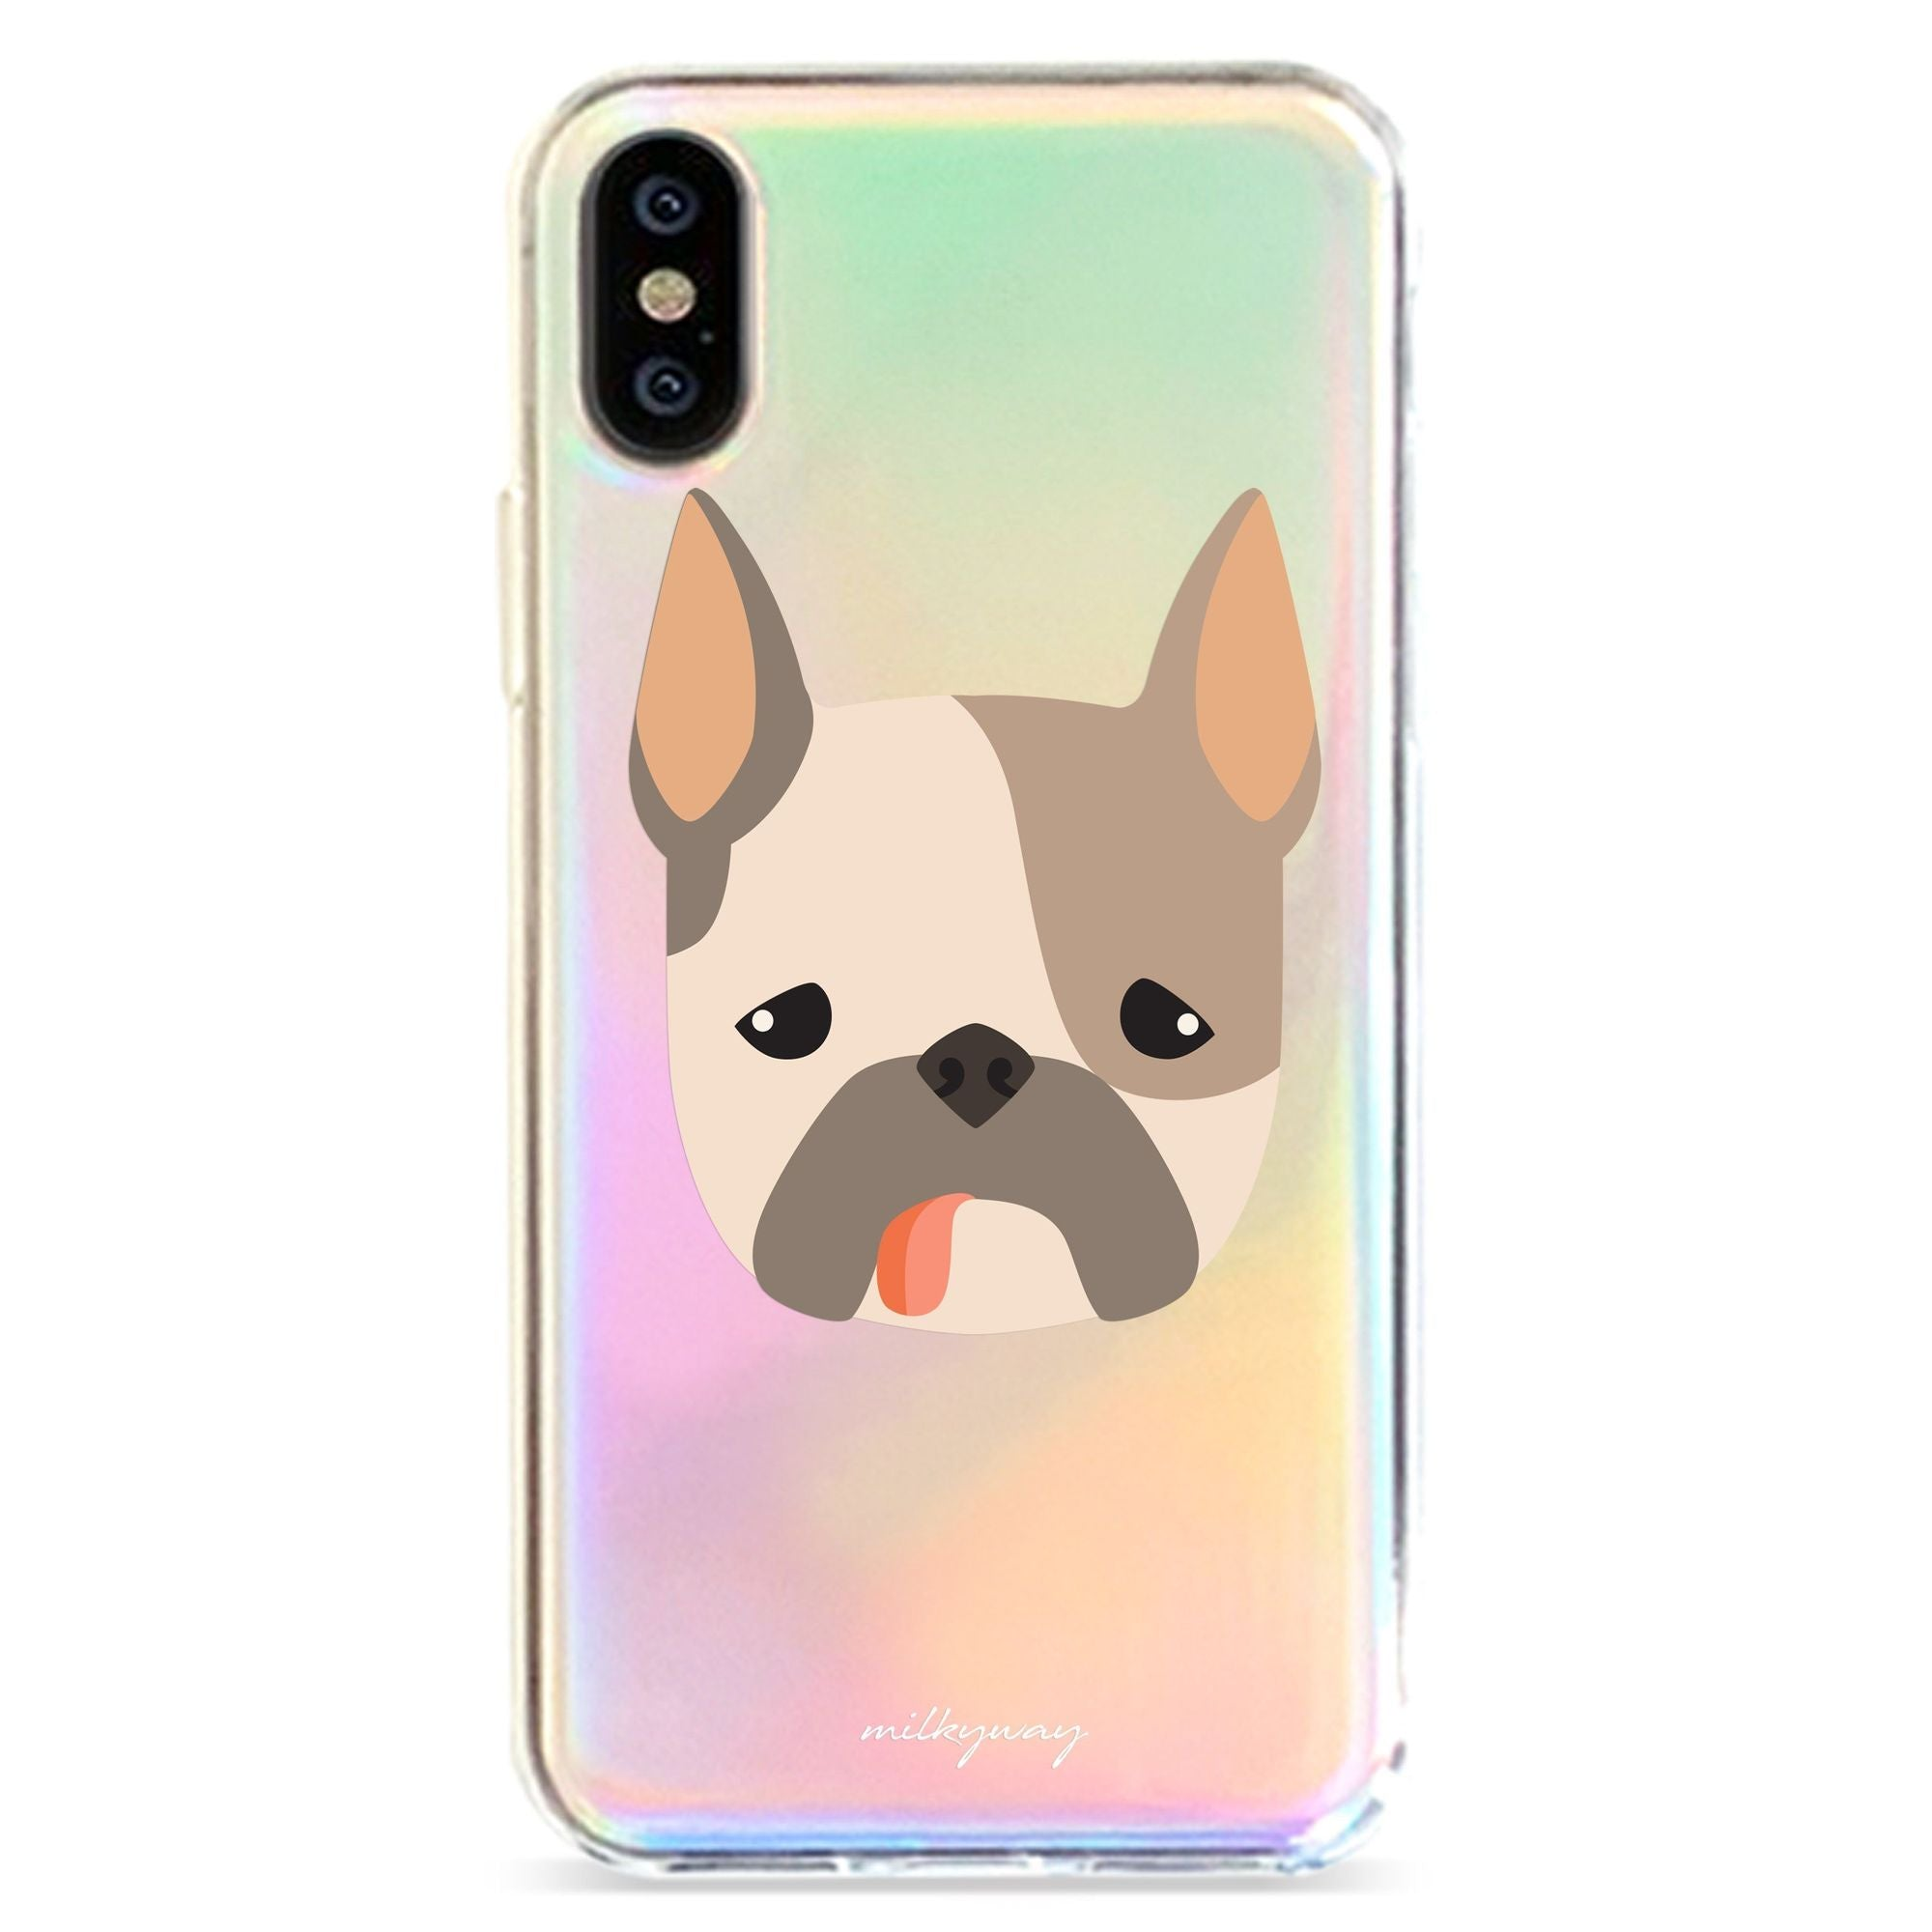 FRENCH BULLDOG - HOLOGRAPHIC IPHONE CASE